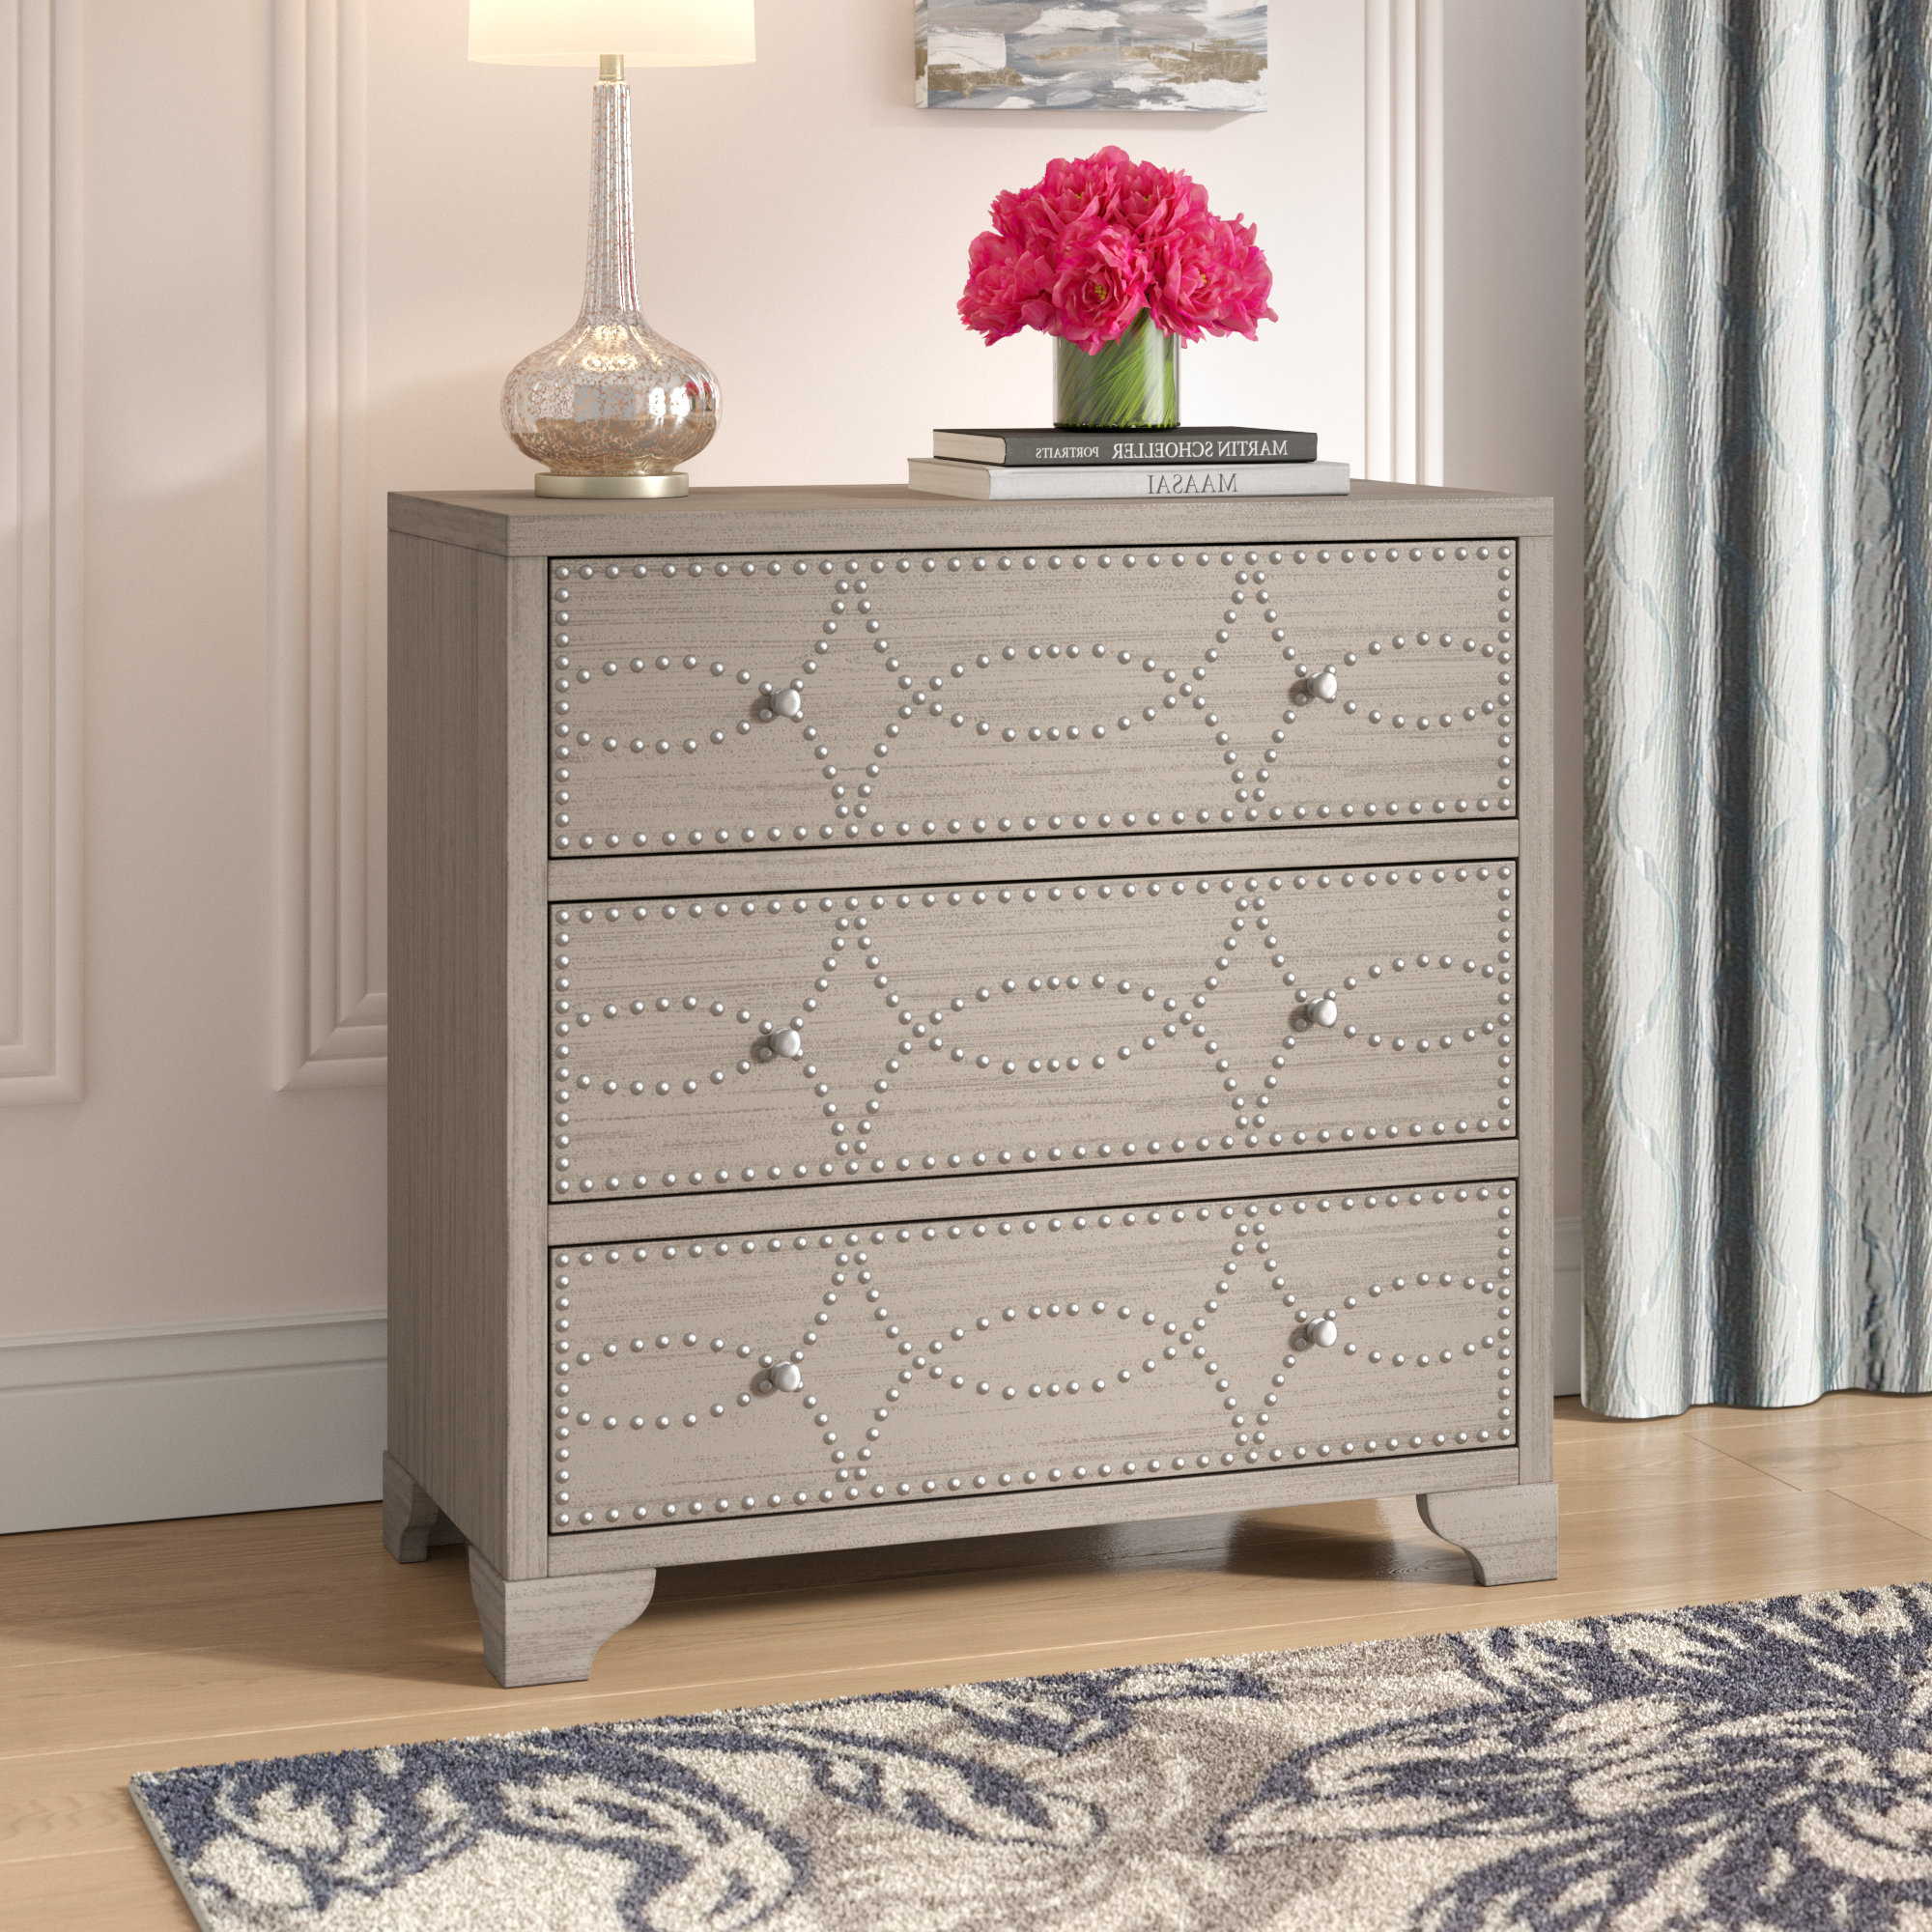 Birch Lane Pertaining To Most Popular Candice Ii Sideboards (Gallery 12 of 20)